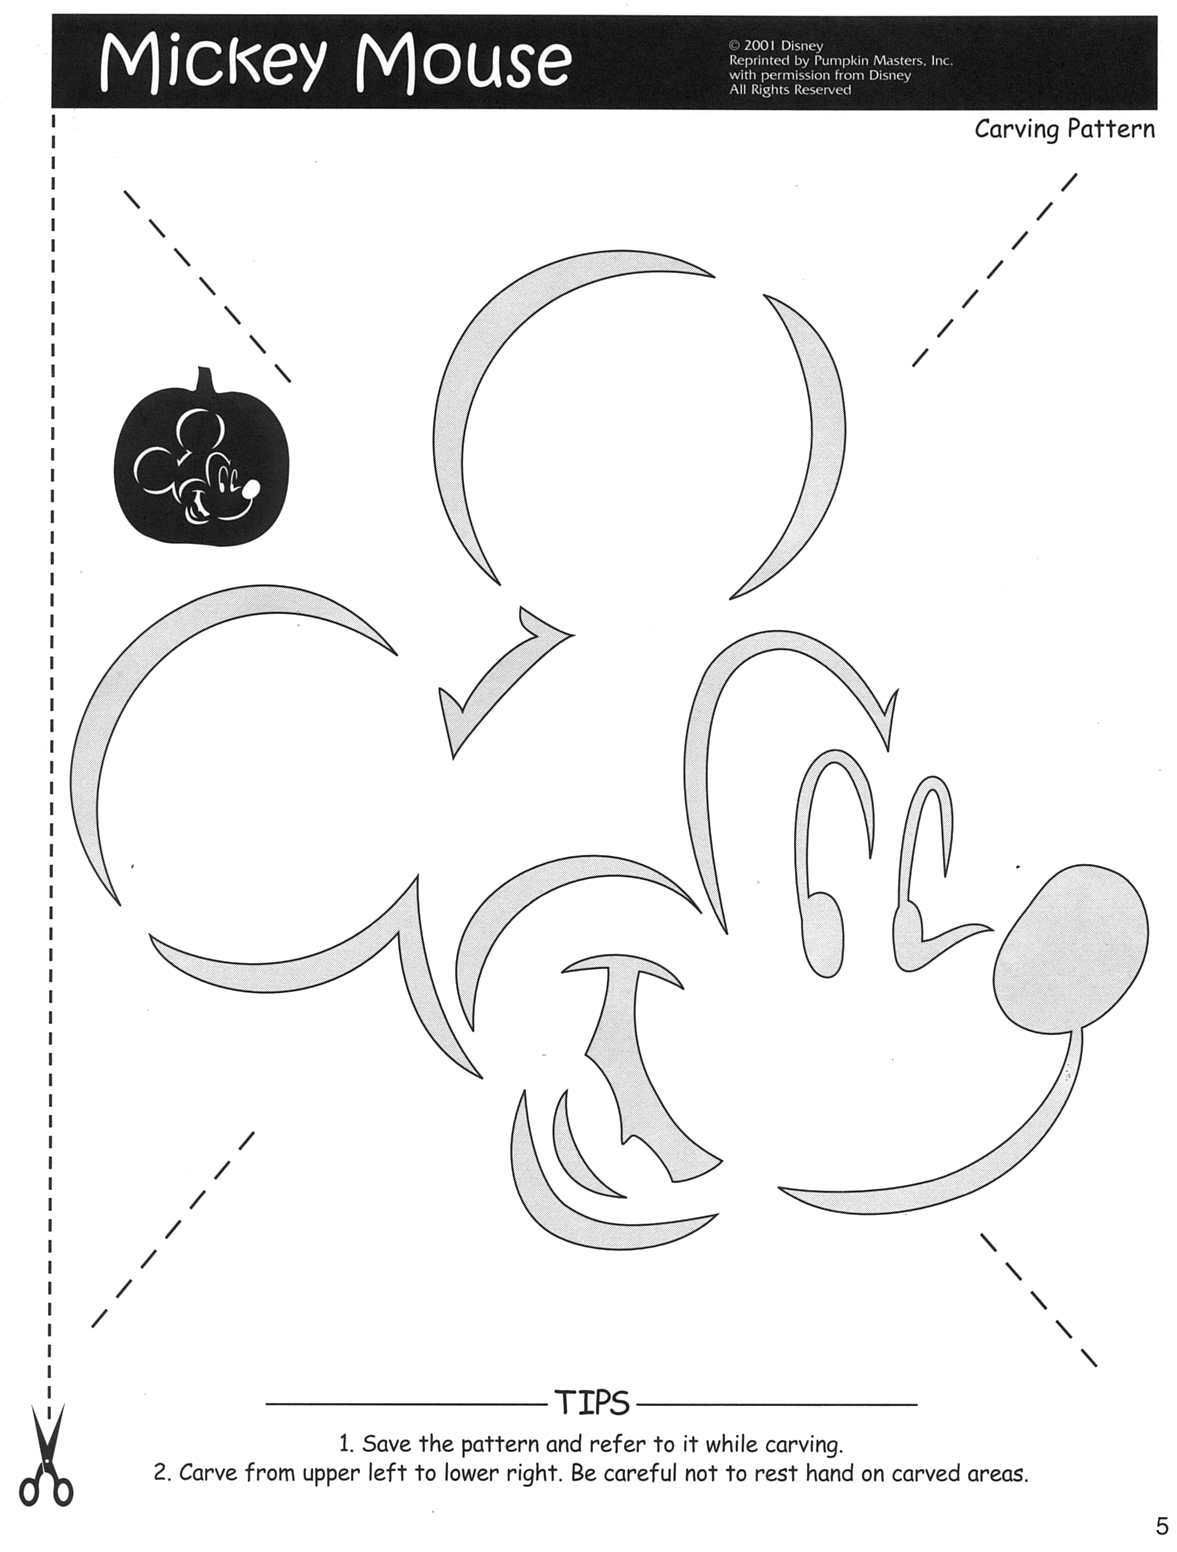 Free Disney Halloween Pumpkin Carving Stencil Templates W